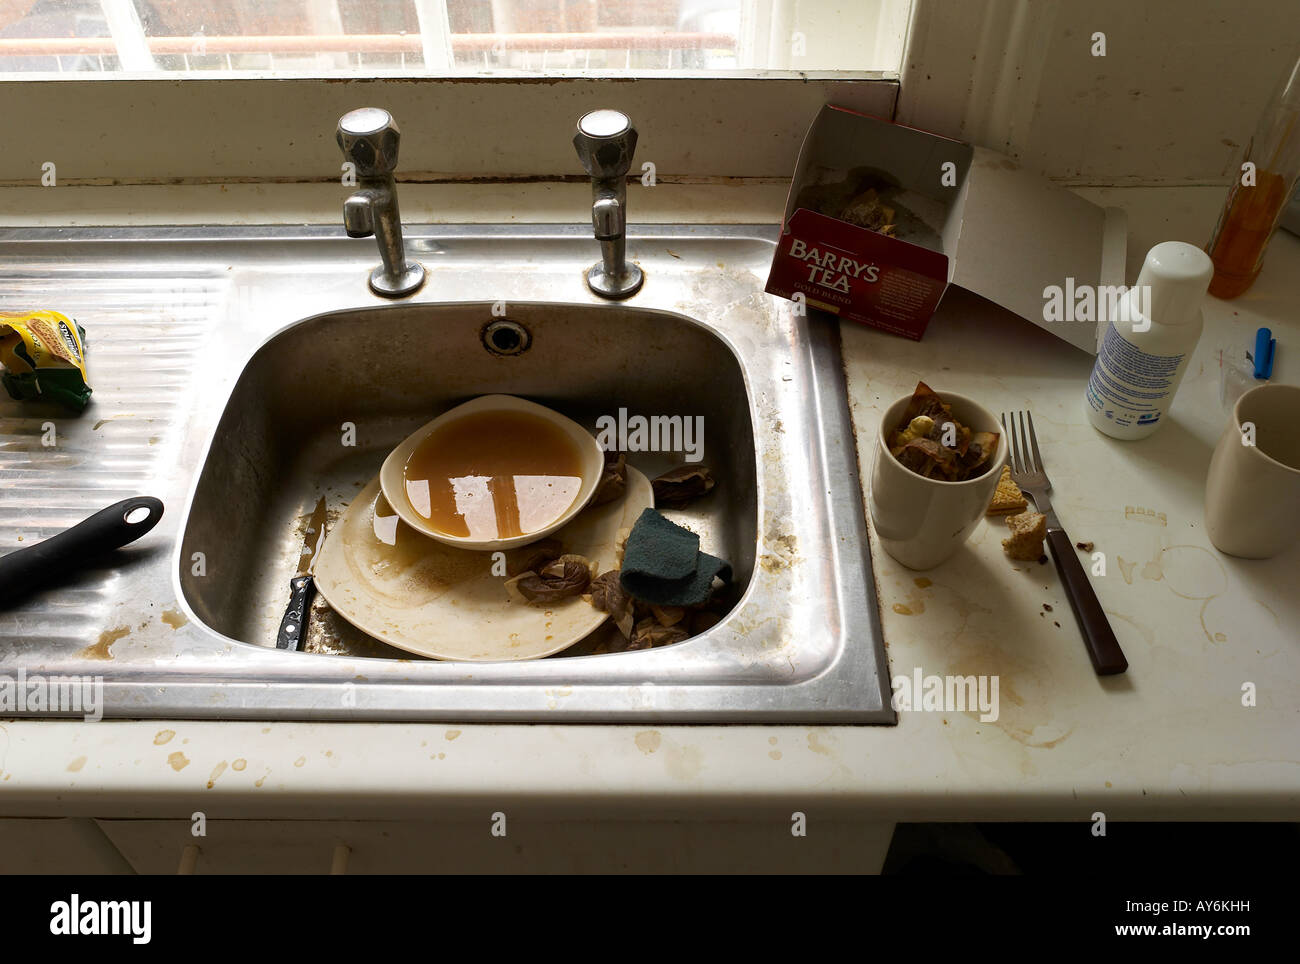 A dirty kitchen sink in an old man s flat Stock Photo, Royalty ...